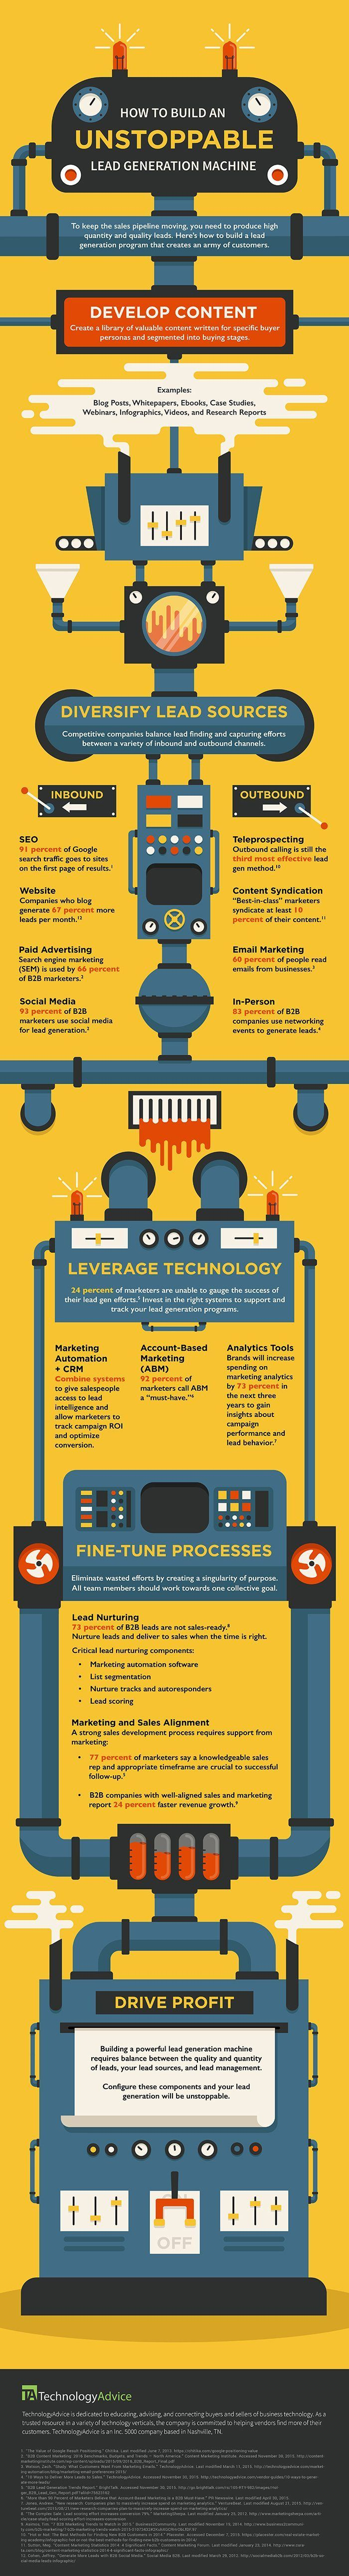 Generate More Leads Infographic